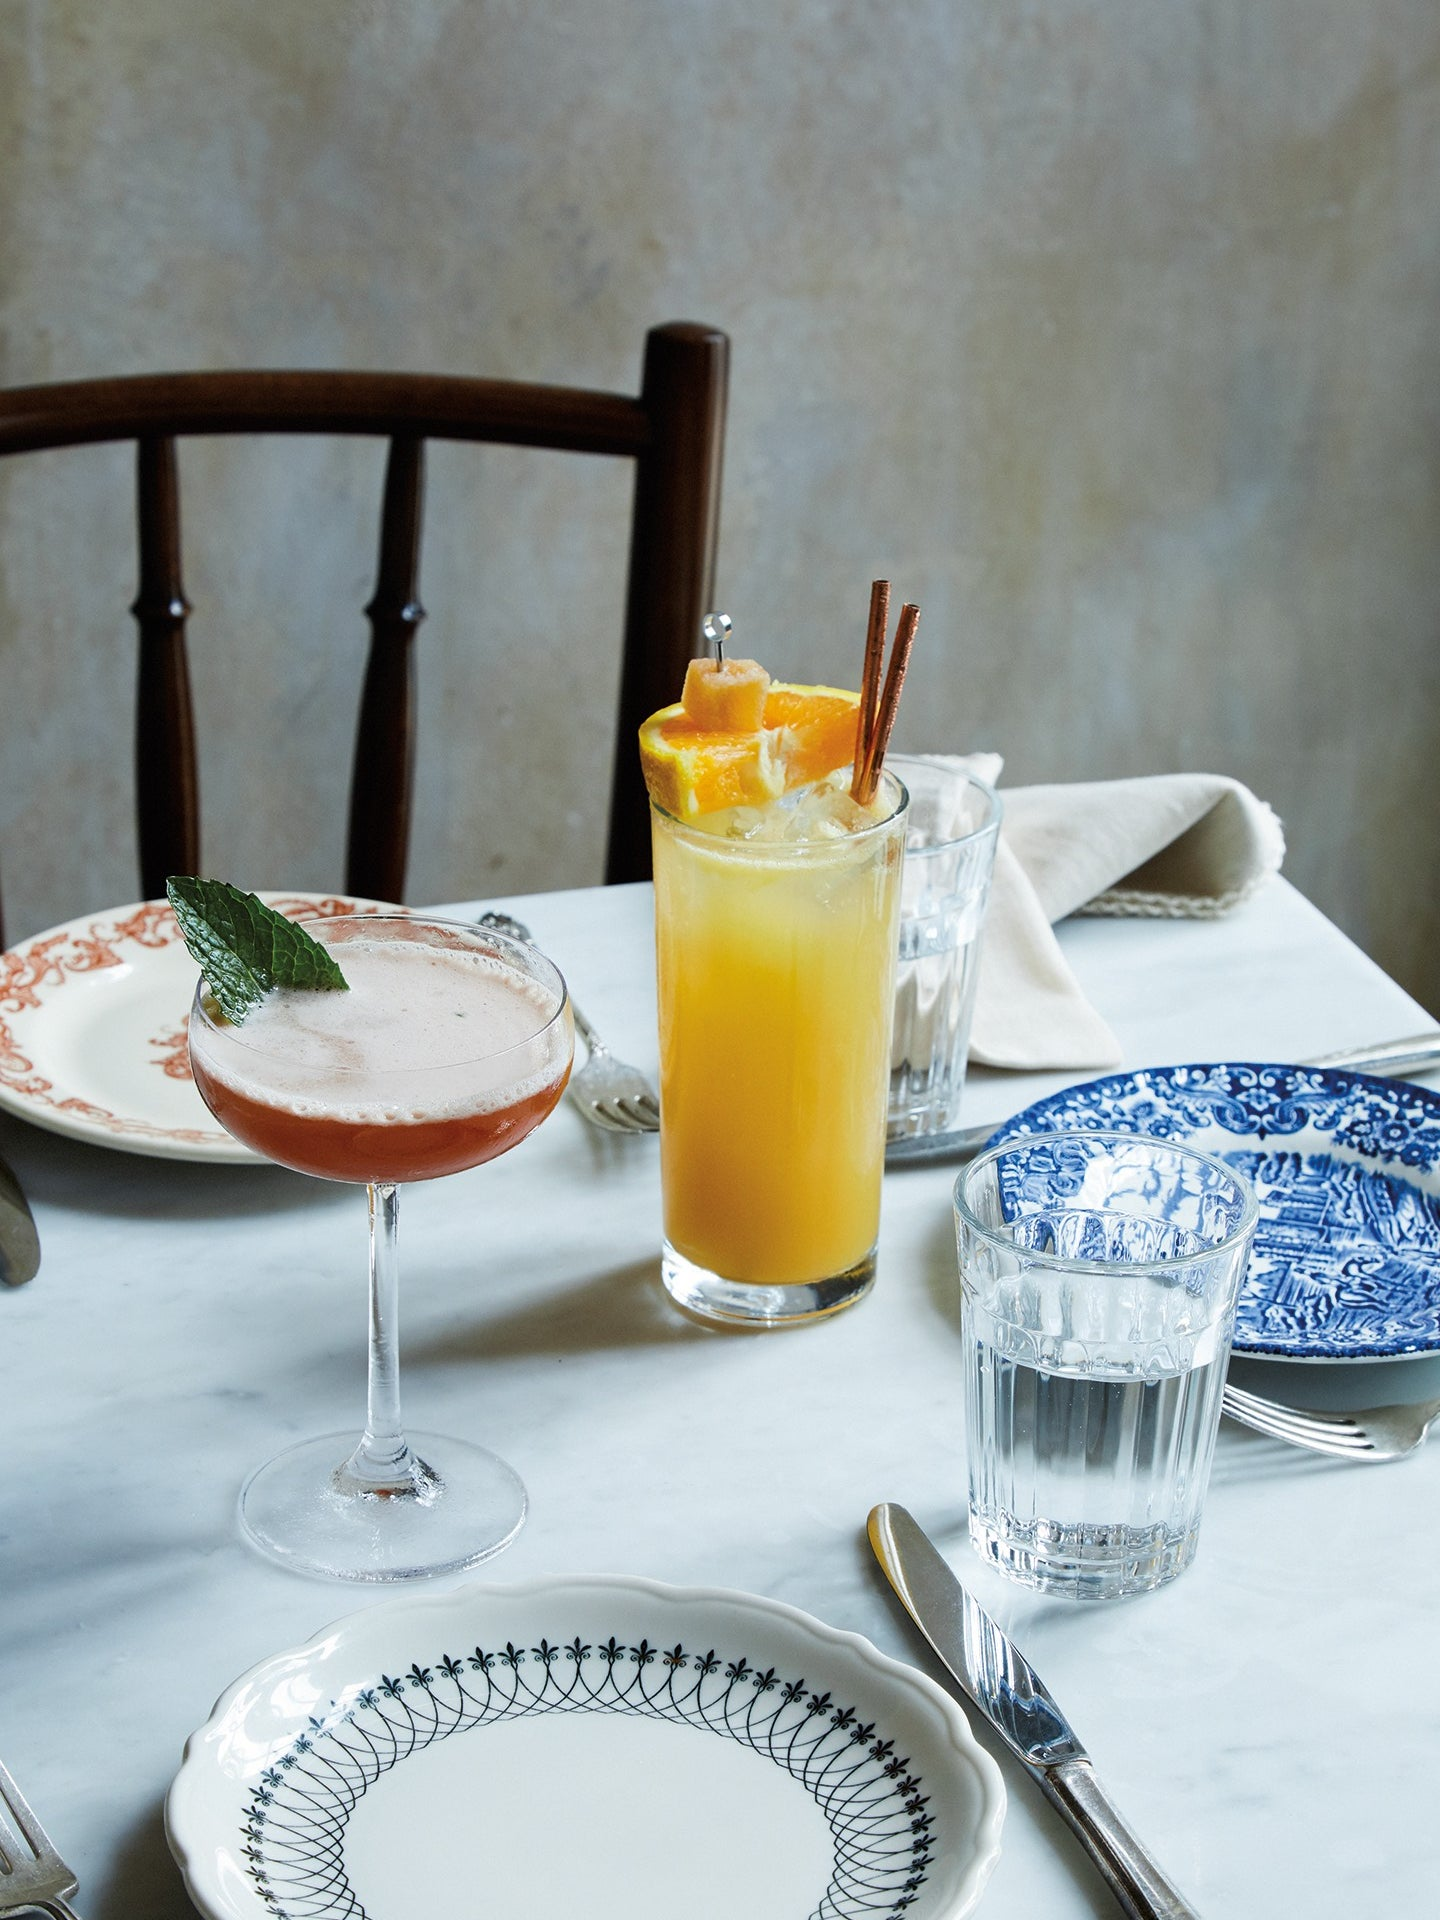 Your Happy Hour Could Use a Trash Cocktail